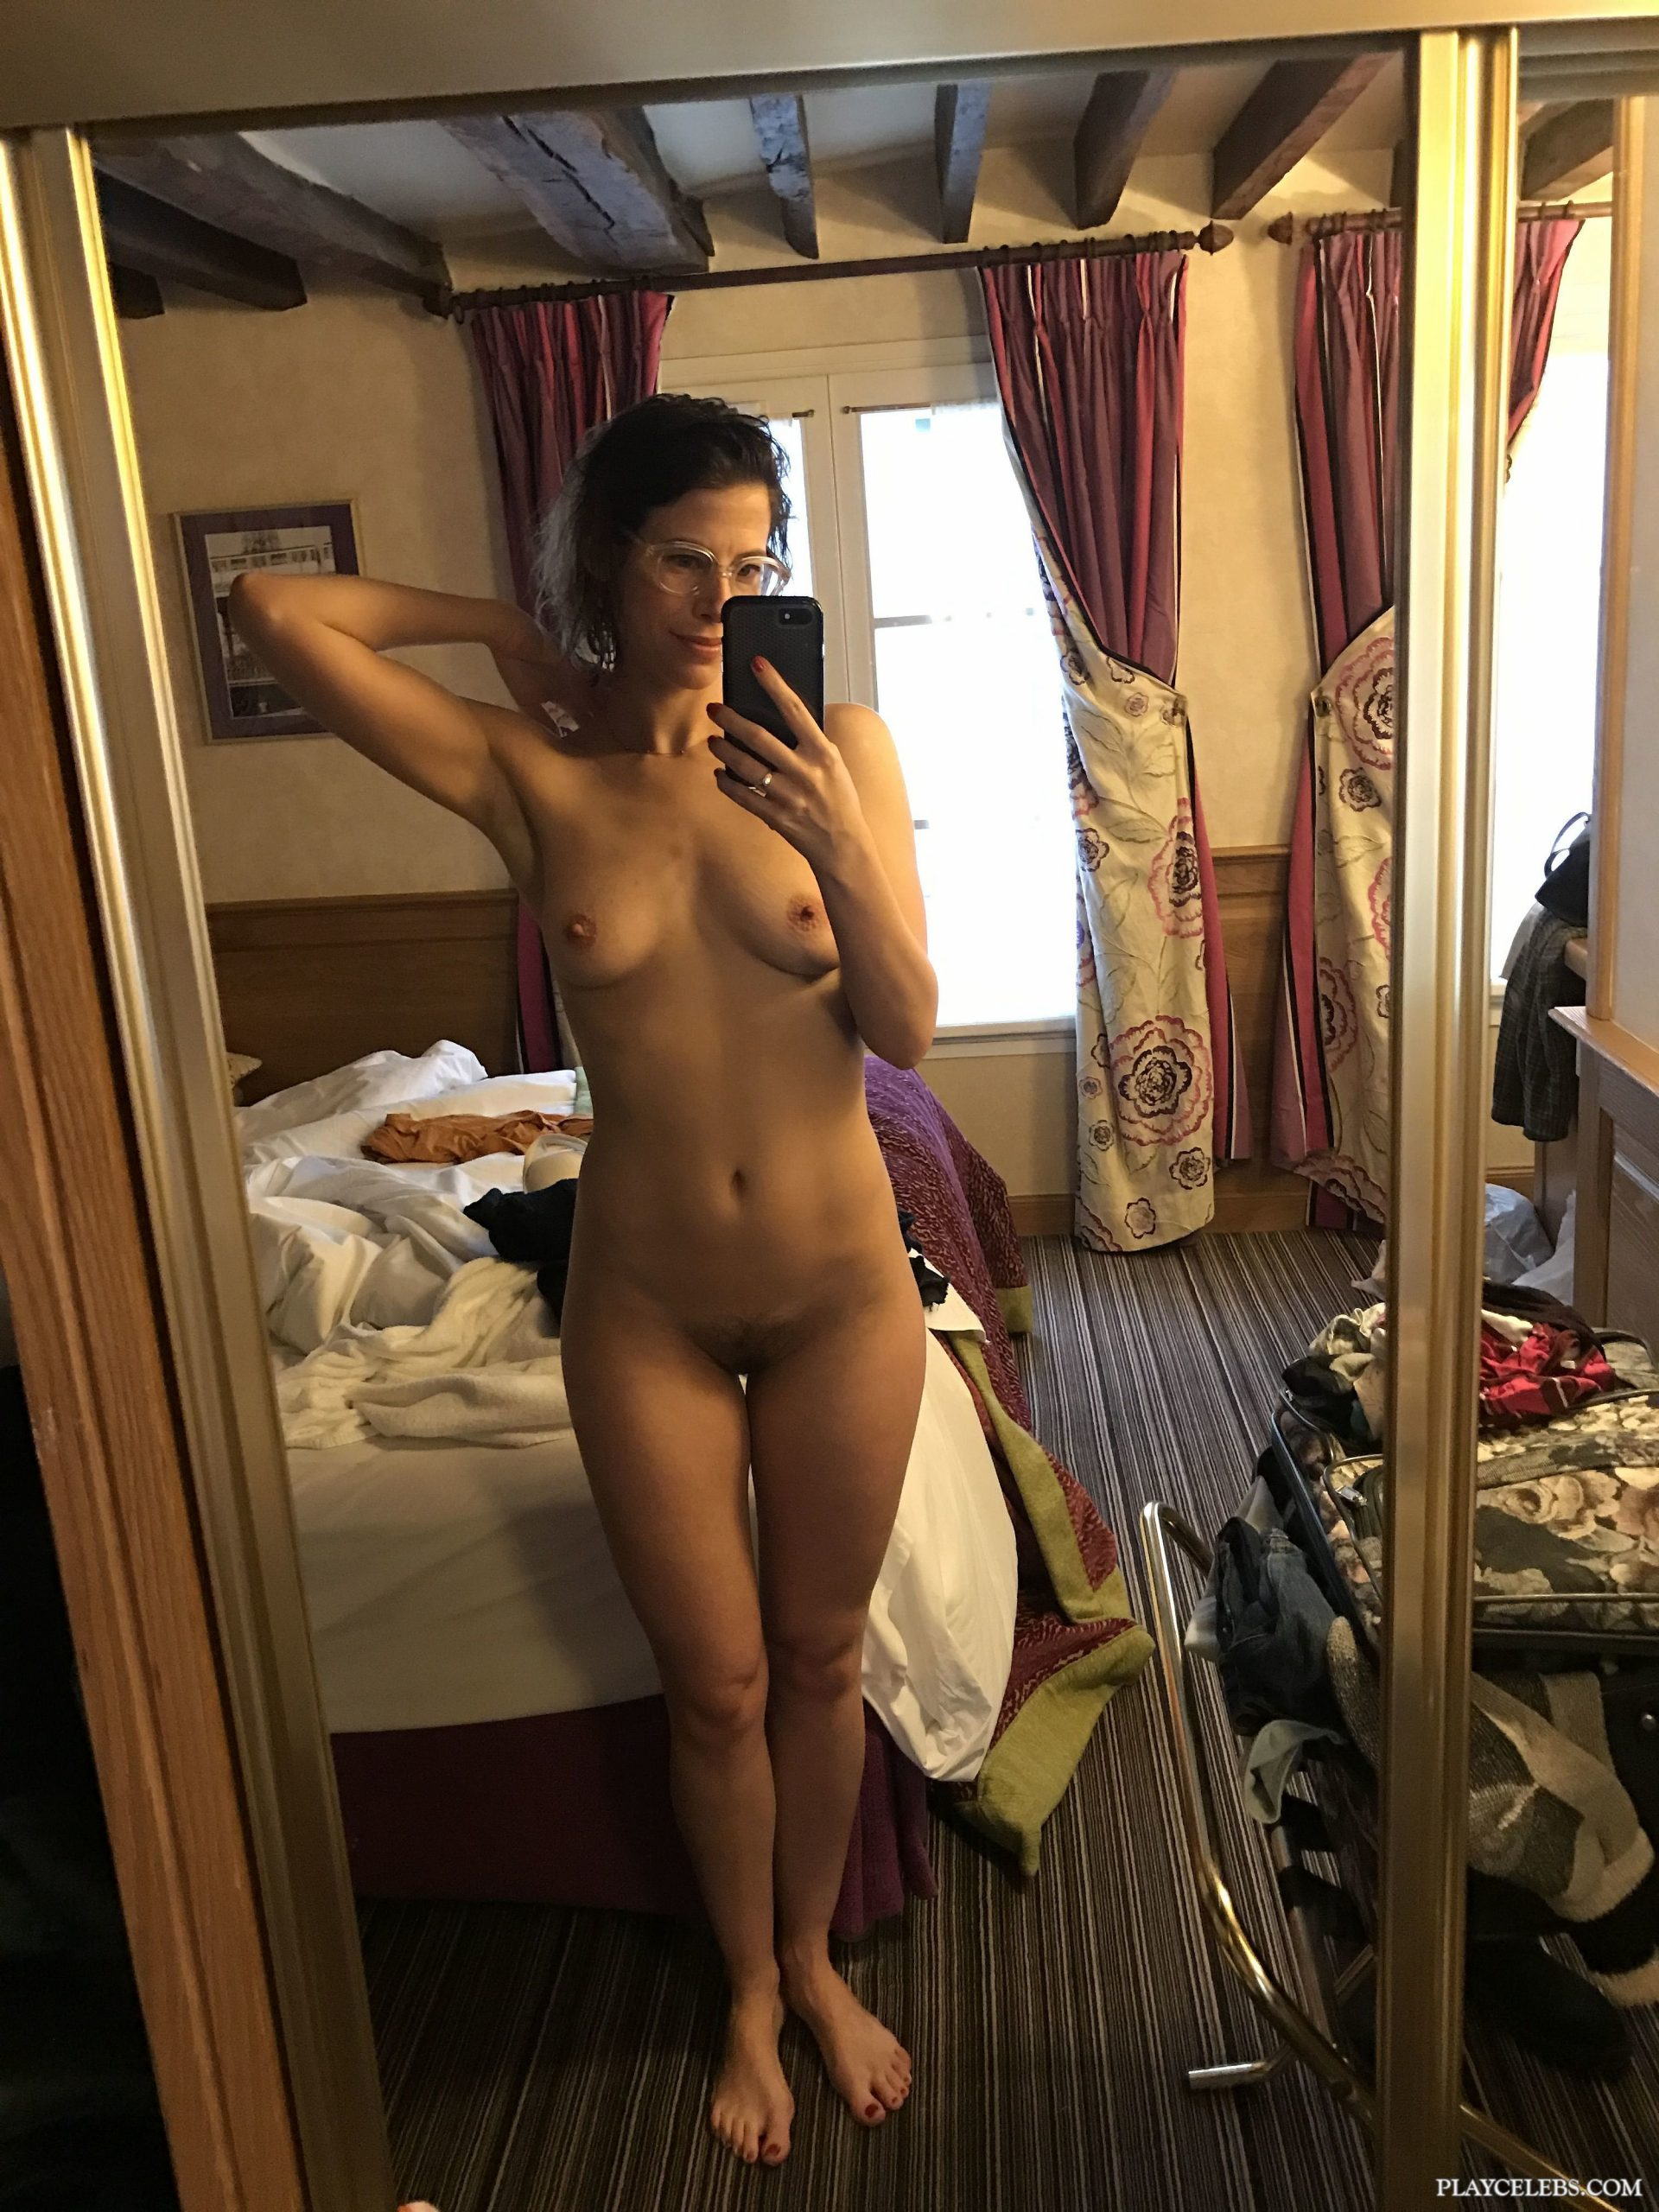 Megan Neuringer Leaked Nude And Sexy Thefappening Photos